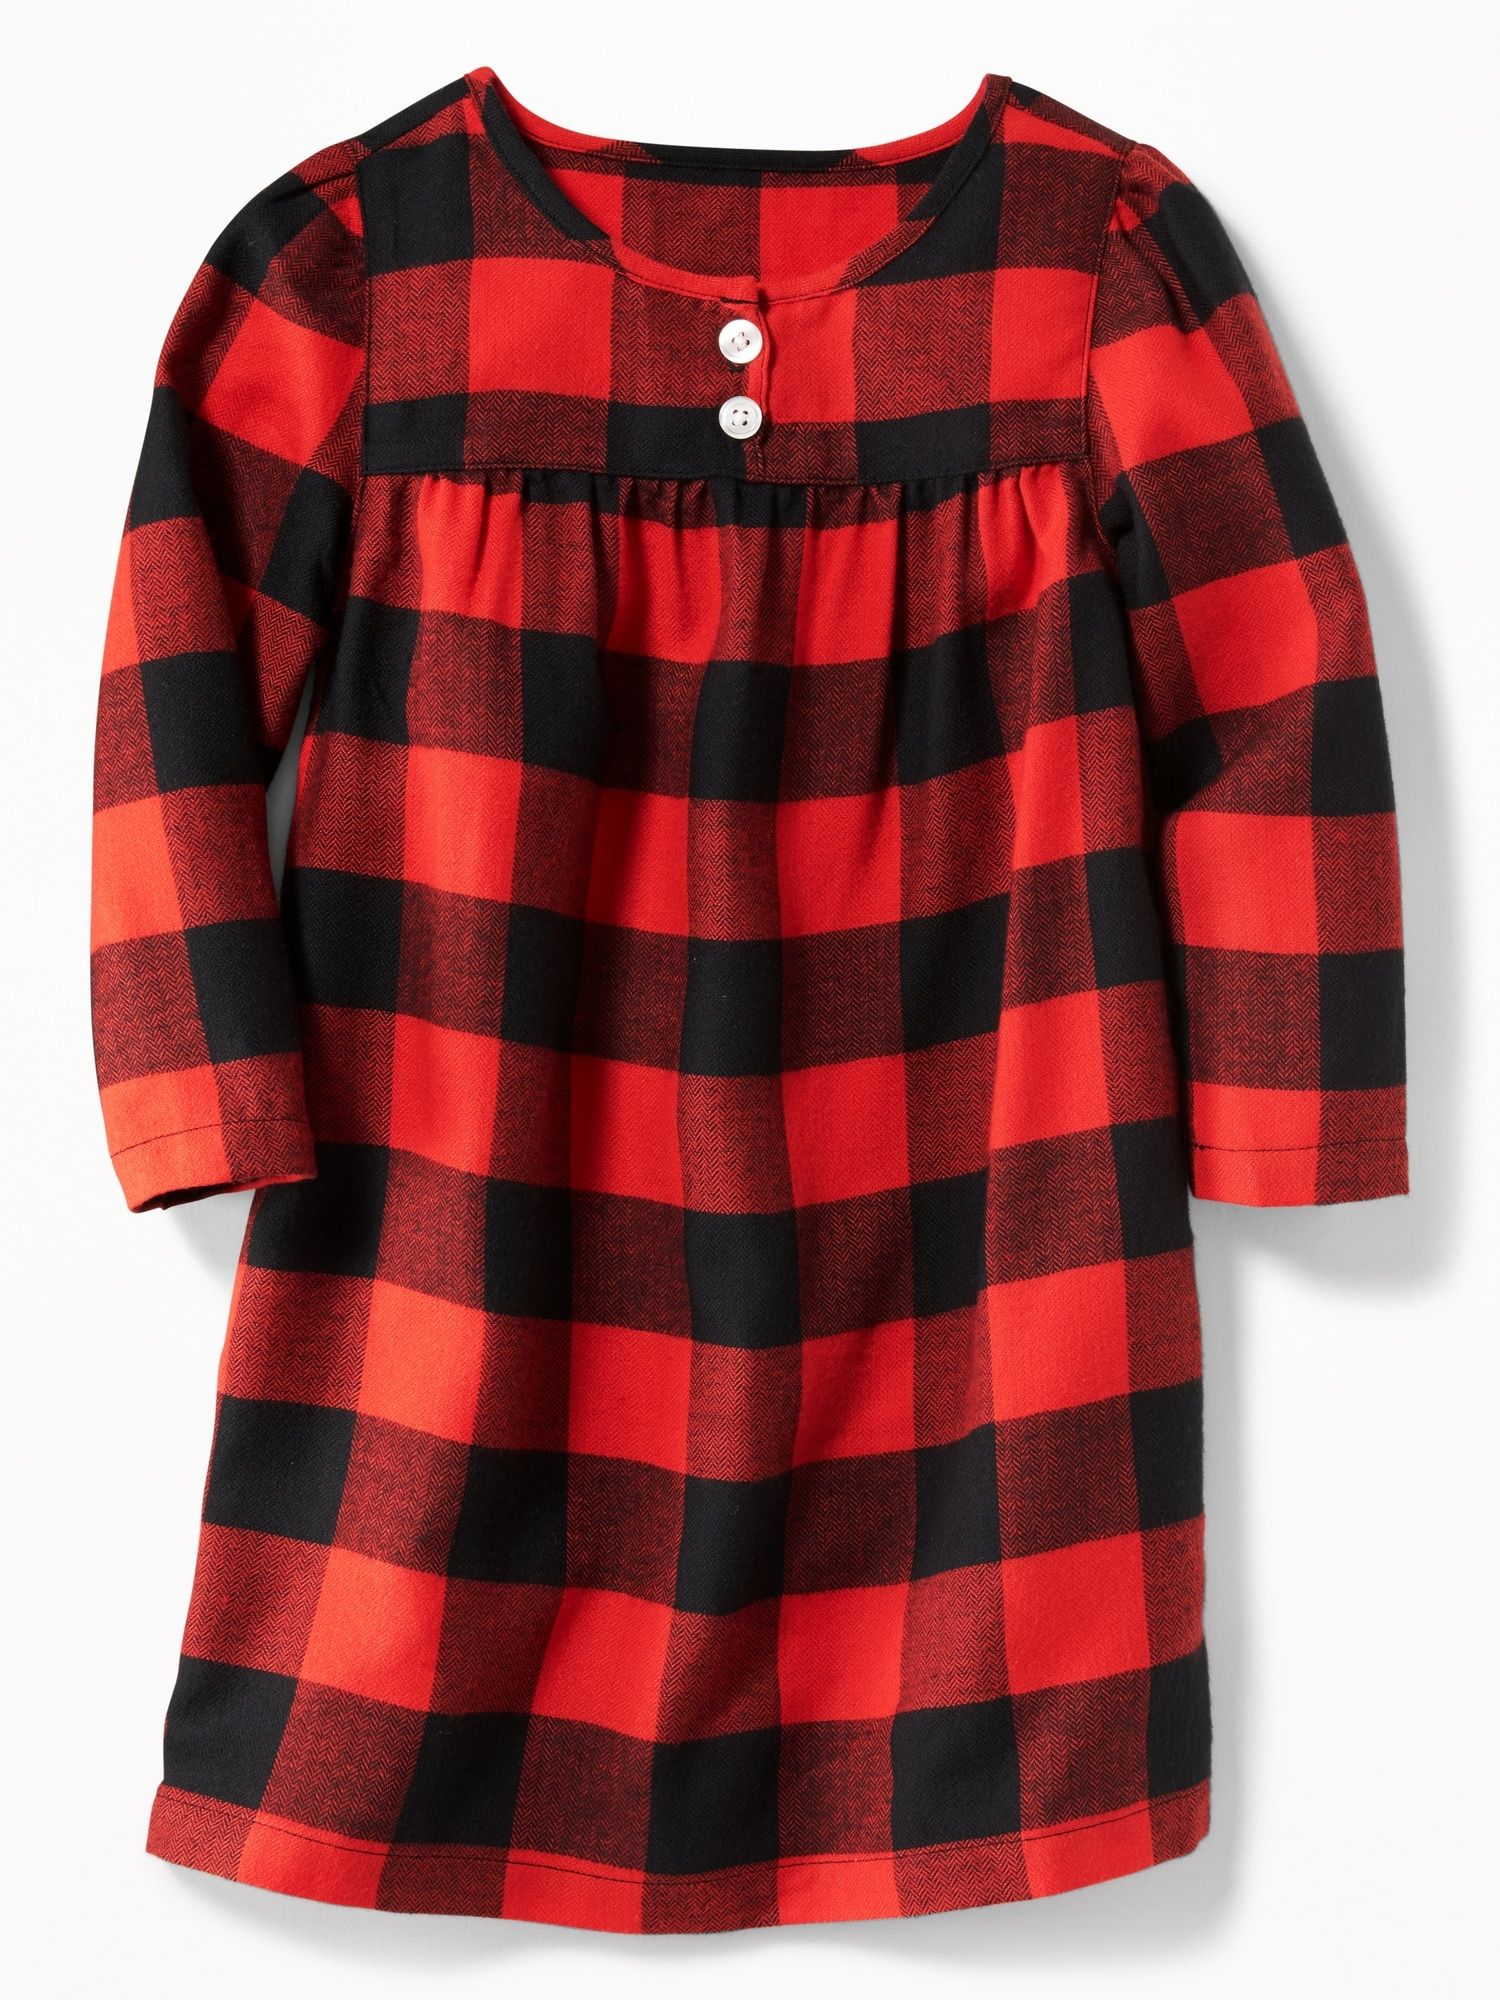 Plaid Flannel Sleep Dress for Toddler Girls Old Navy